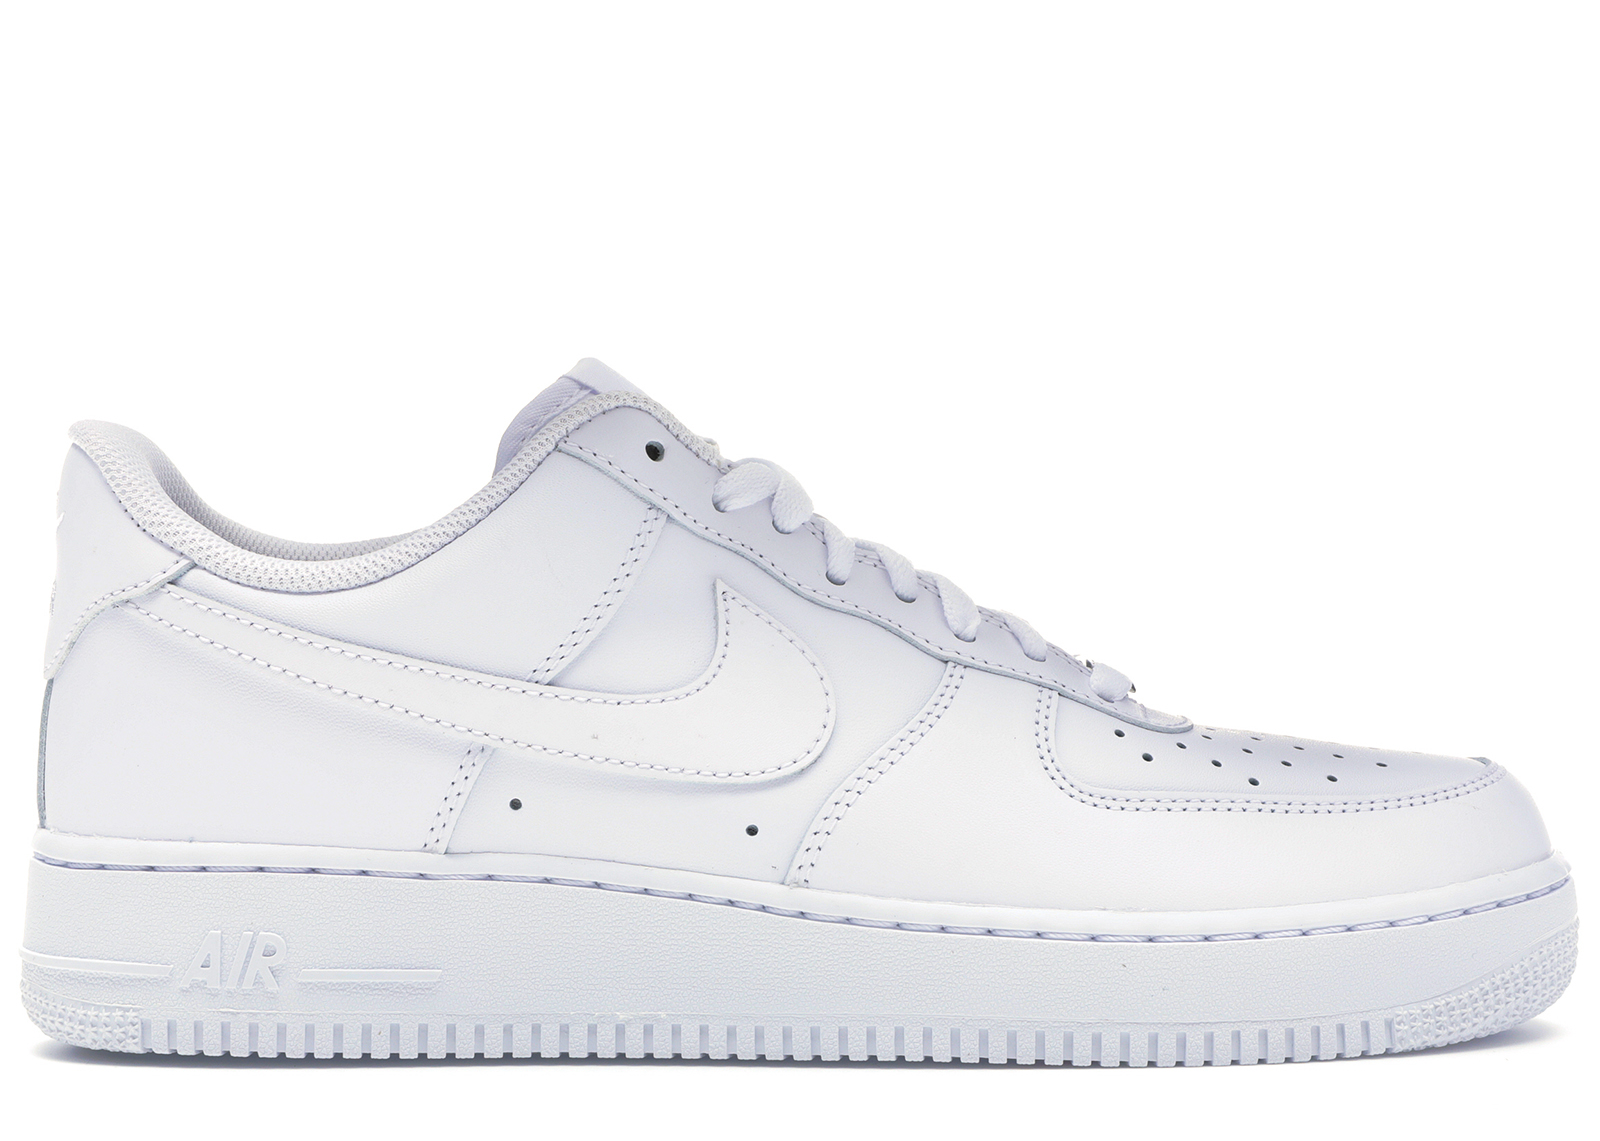 Nike Air Force 2016